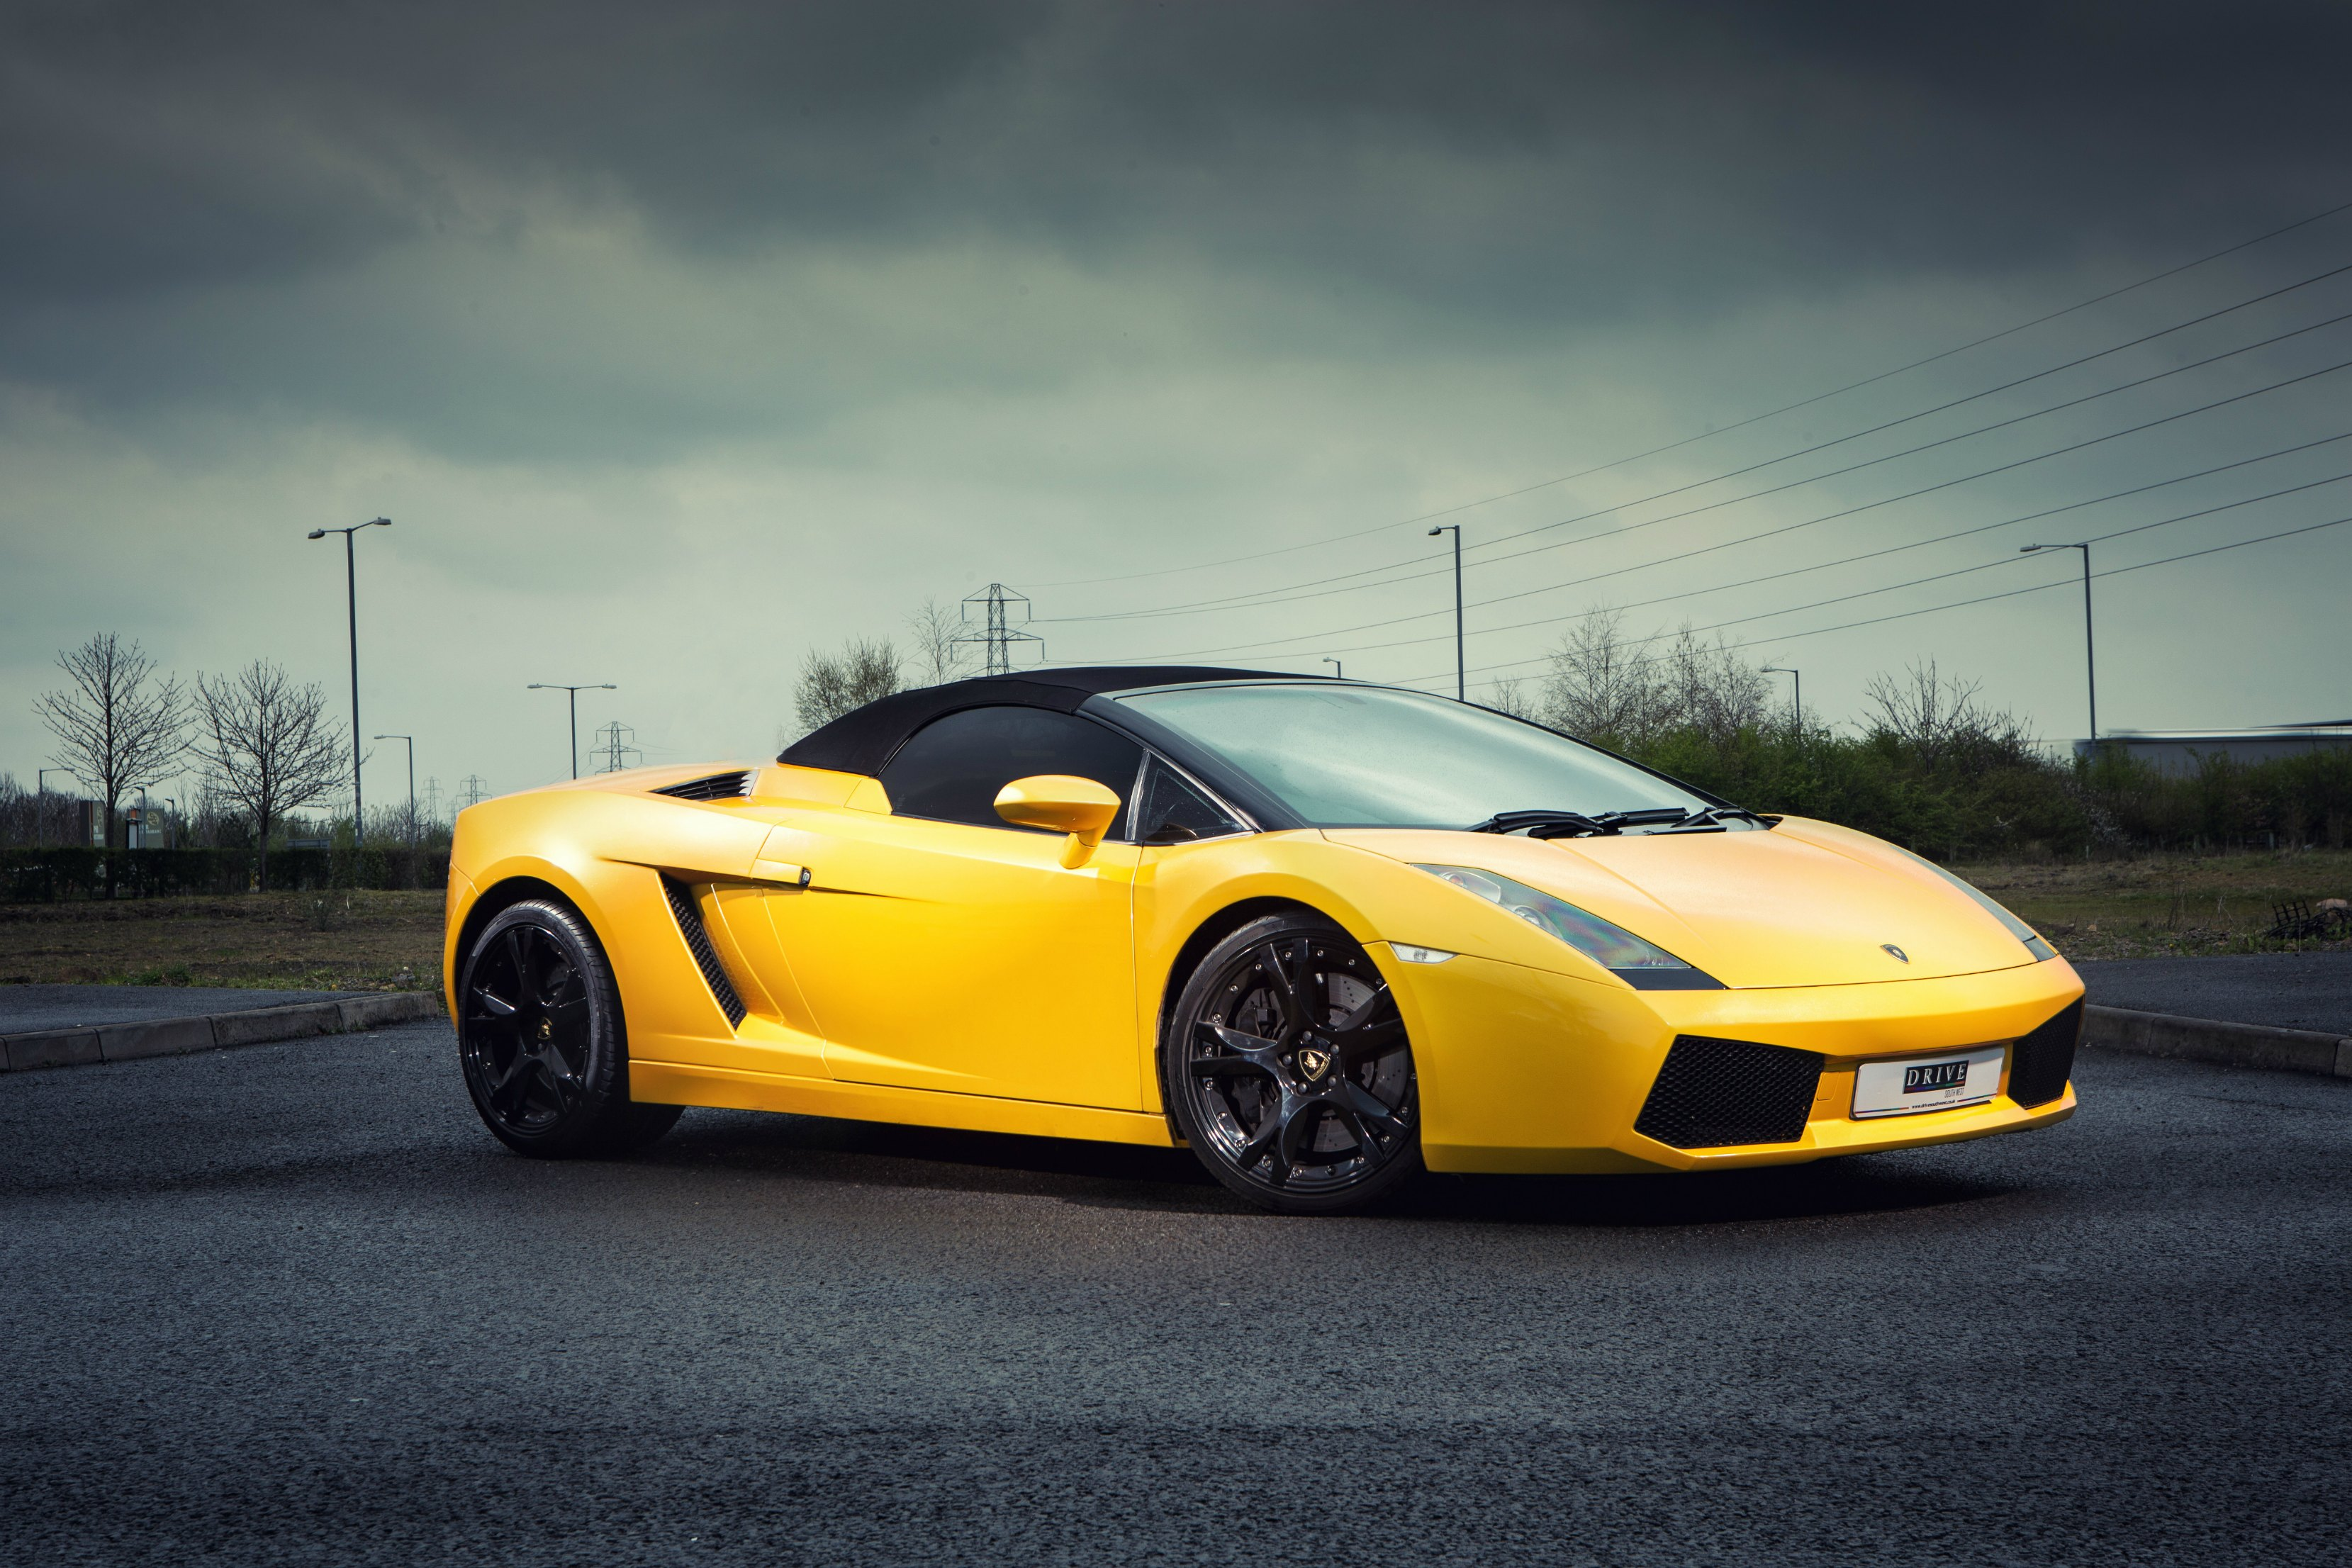 Lamborghini Gallardo Spyder Drive South West Luxury Prestige